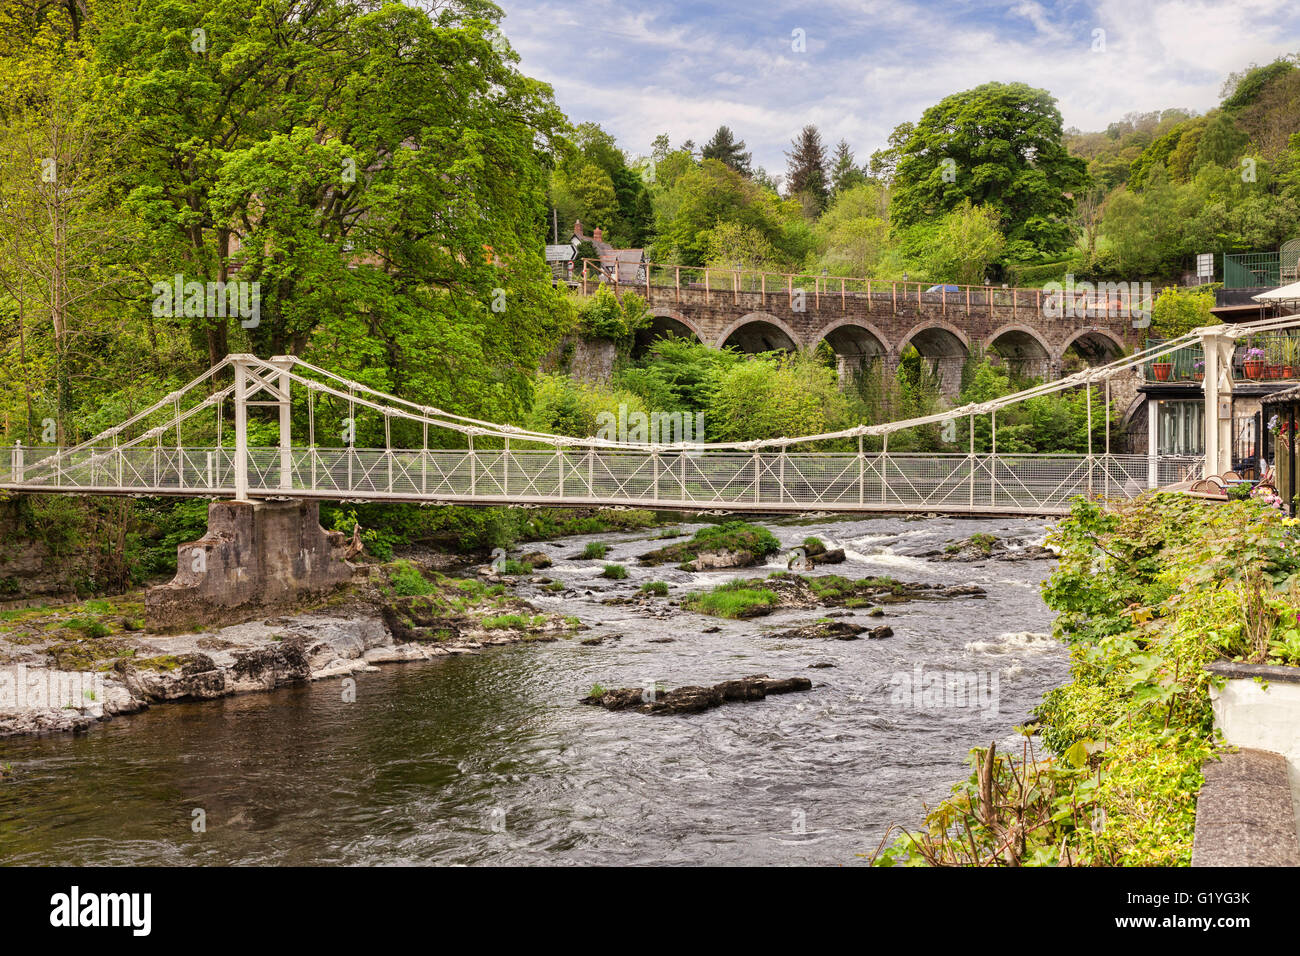 The Chain Bridge, built in 1817 and thought to be the oldest chain links bridge in the world, crossing the River - Stock Image